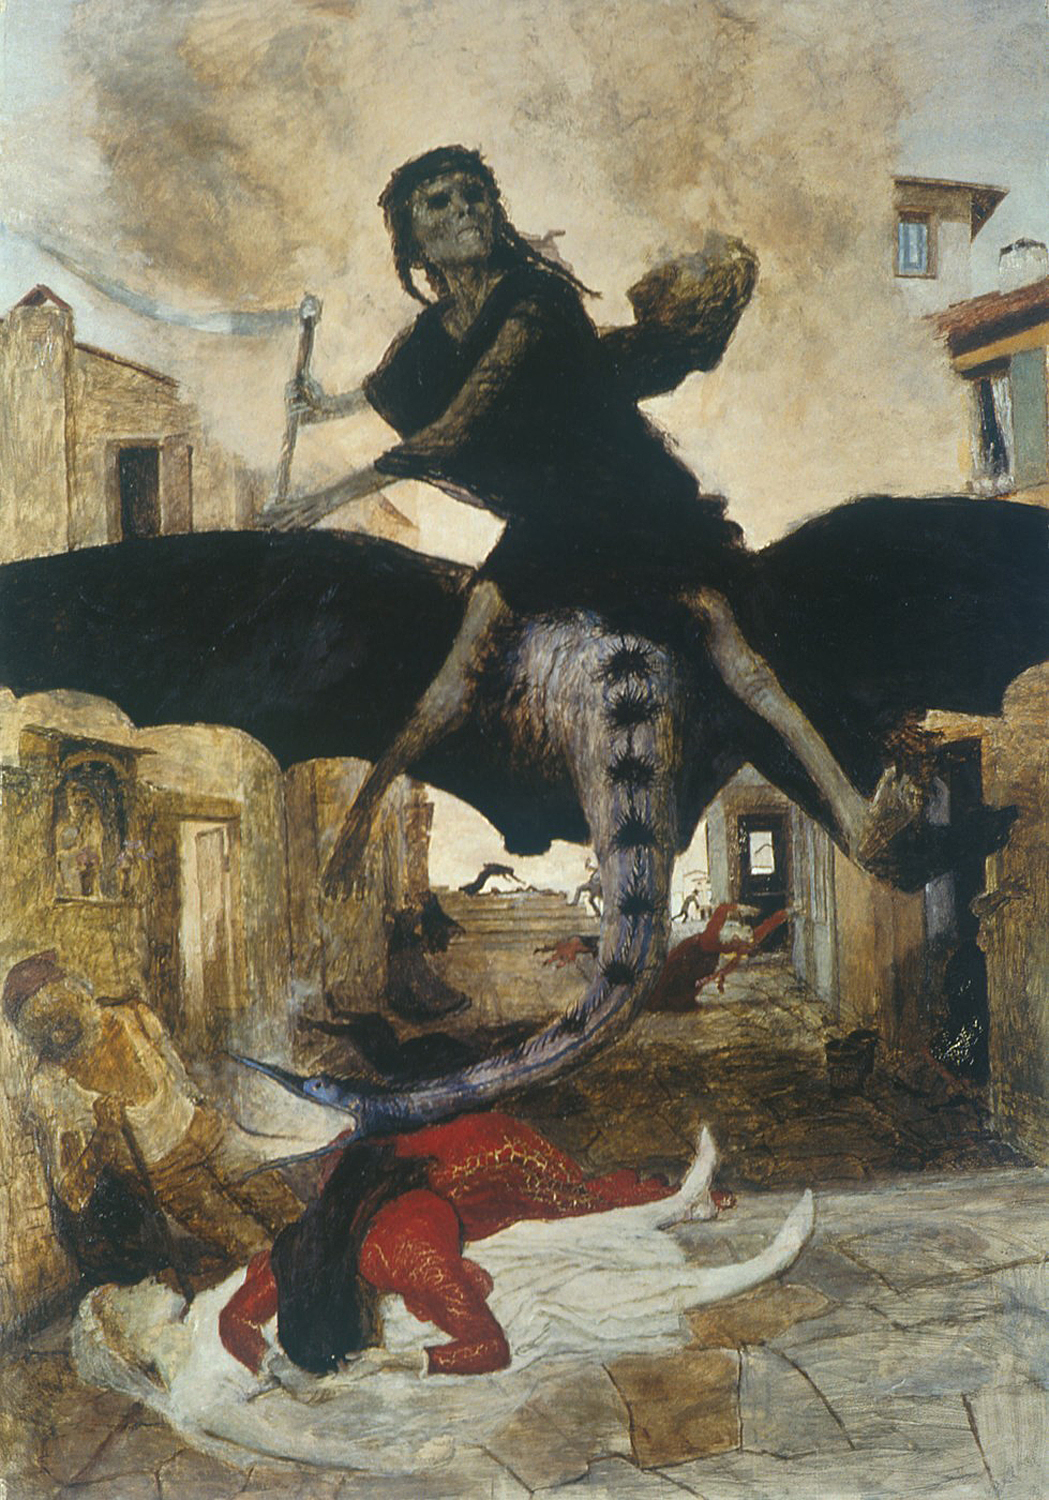 An image of Pestilence personnified as a man holding a scythe and riding a winged beast.